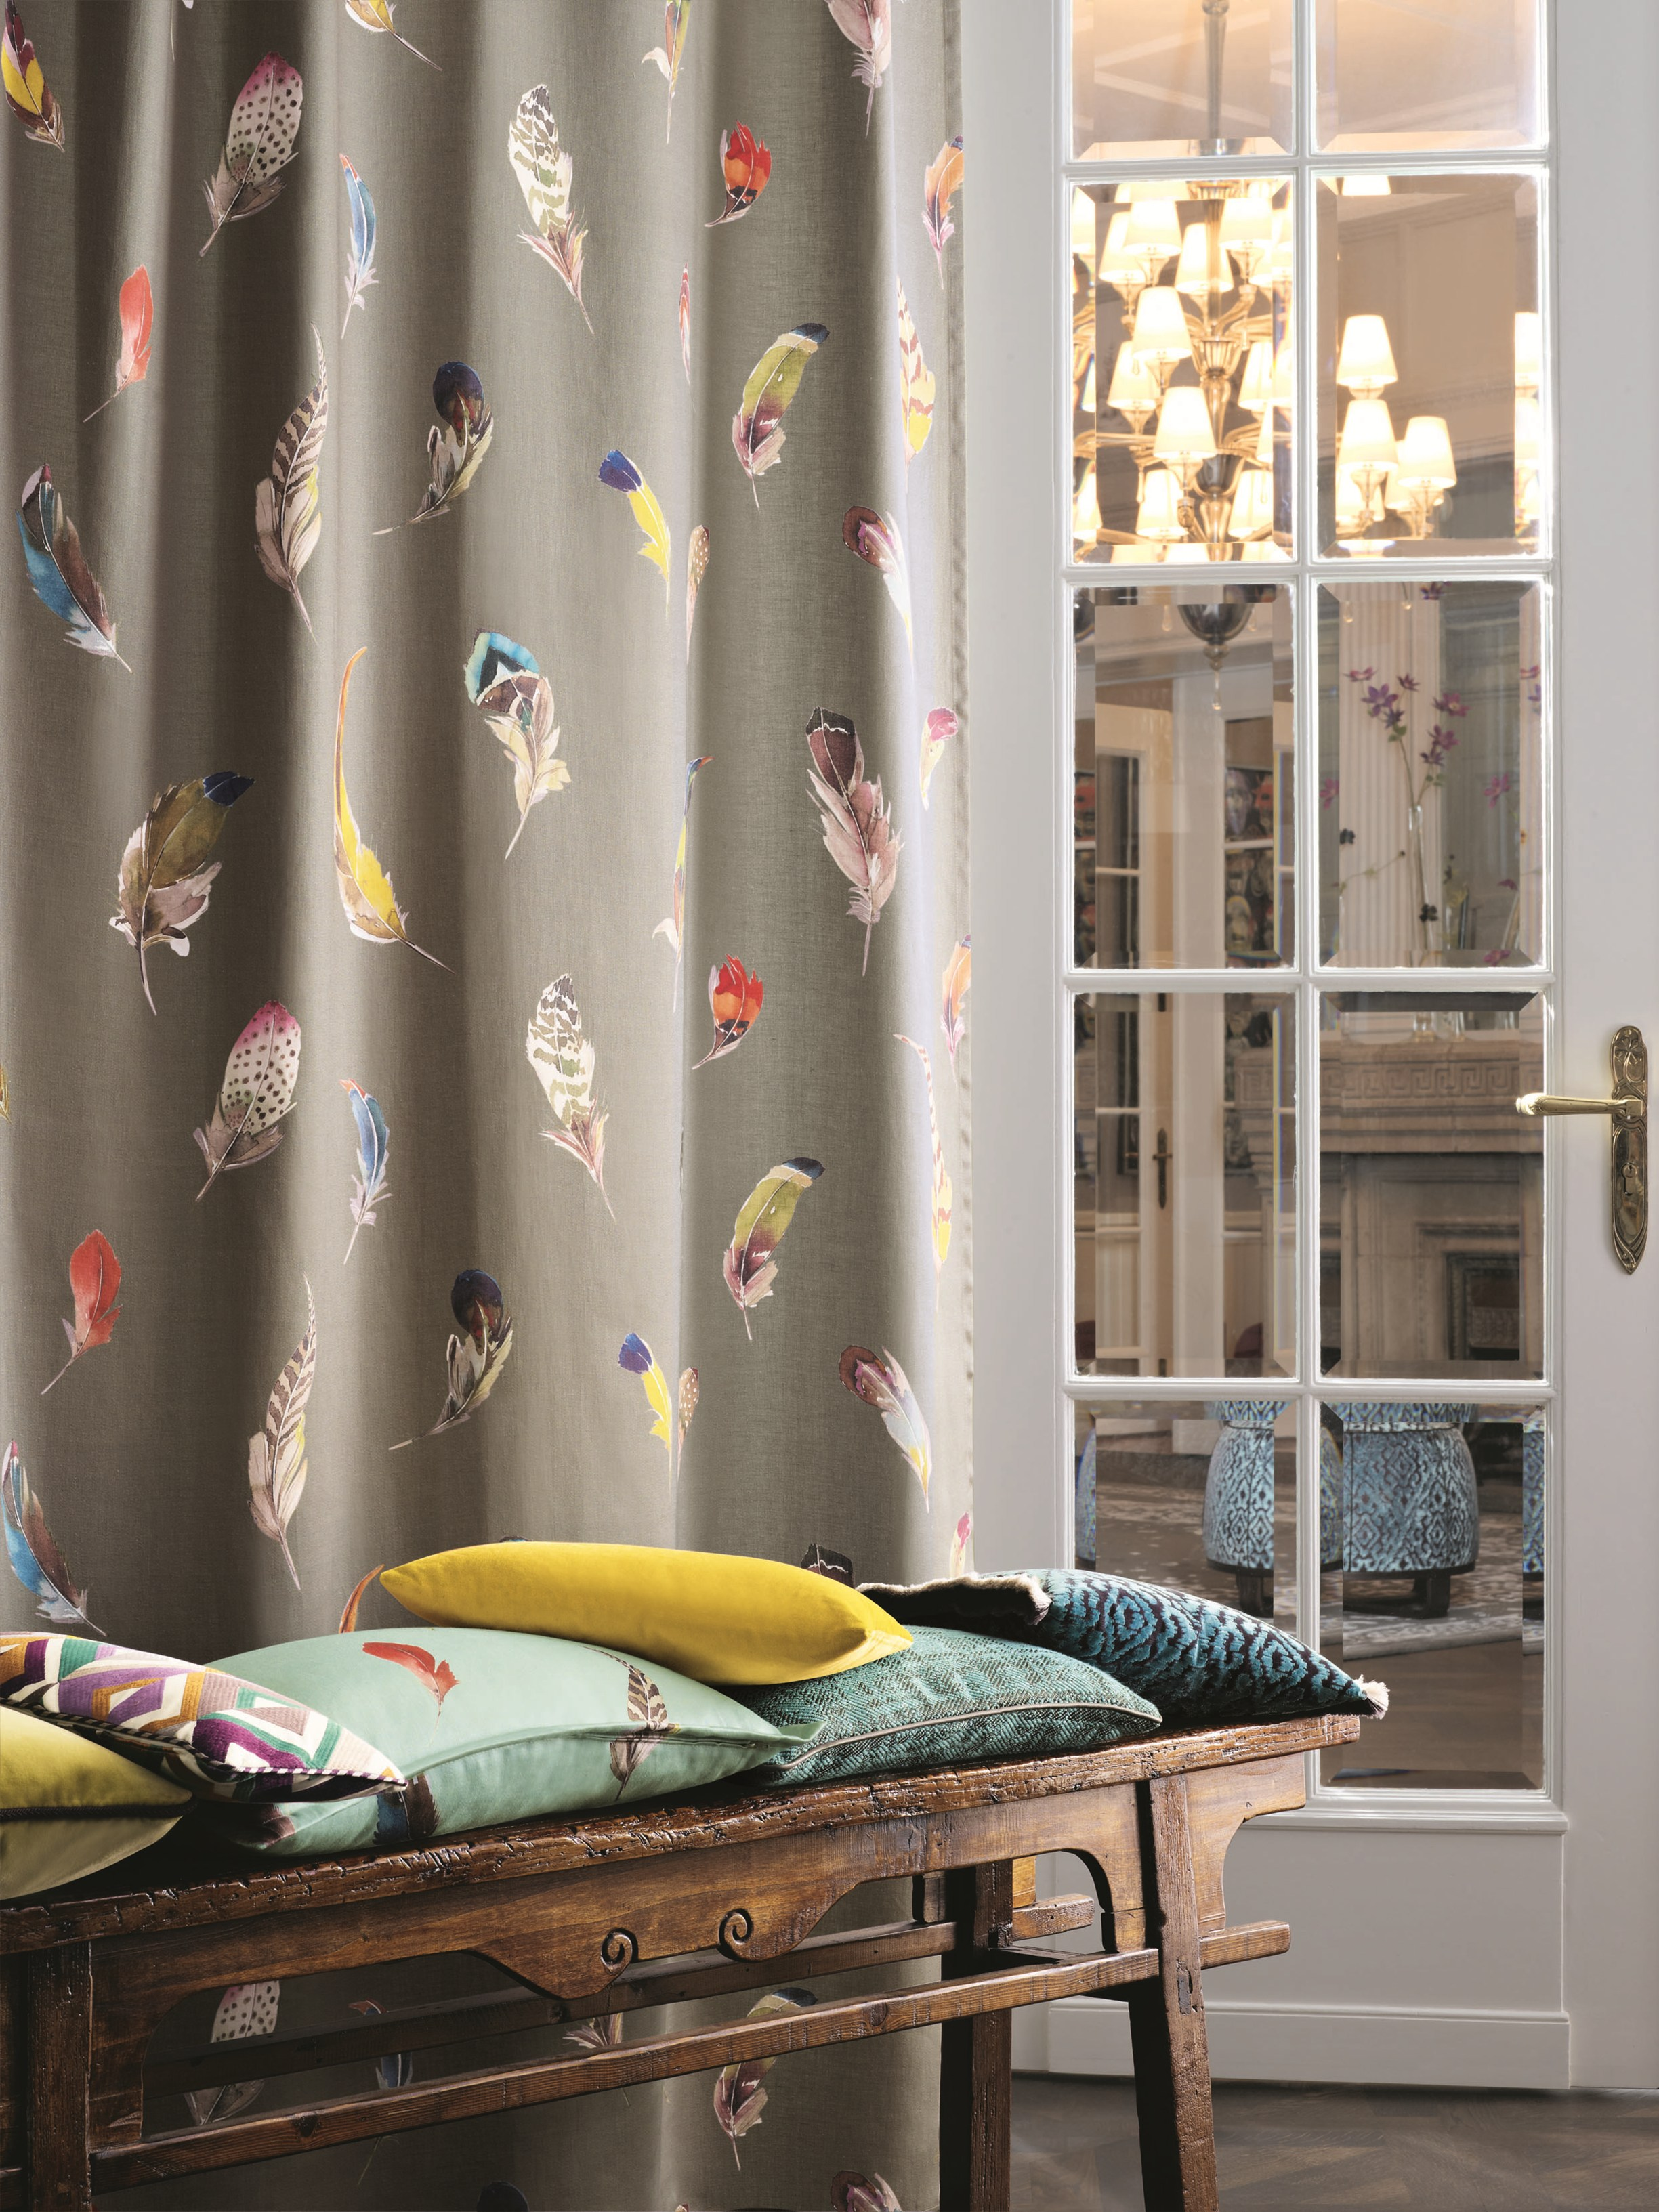 tissu en lin pour rideaux birds gallery collection paradise by zimmer rohde. Black Bedroom Furniture Sets. Home Design Ideas